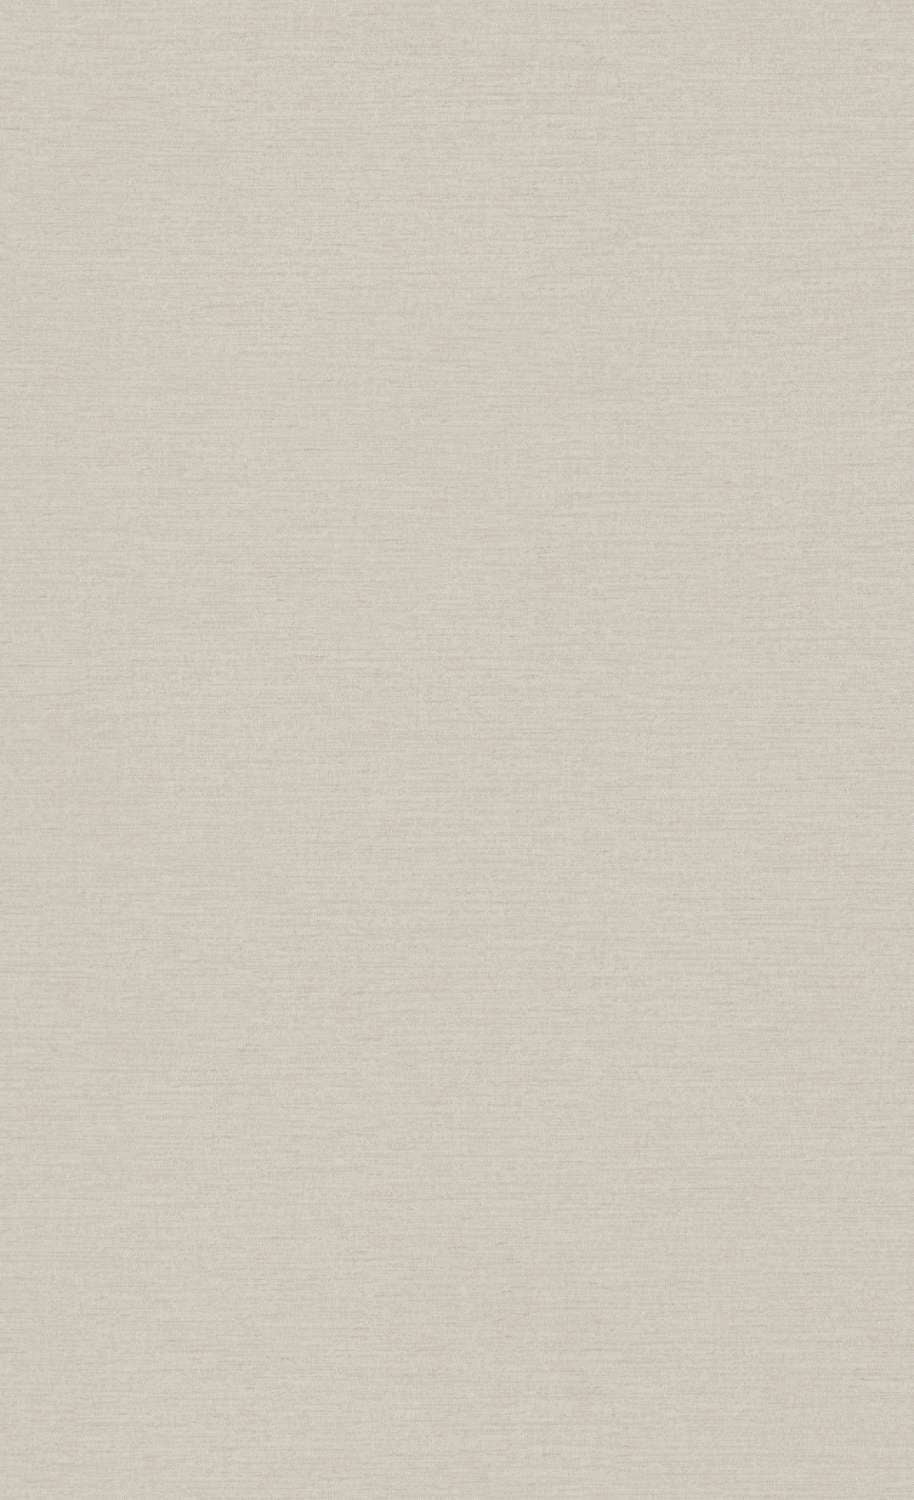 Sandy Static Gray Plain Textured Commercial Wallpaper C7205 , textured , neutral, modern, wooven wallpaper